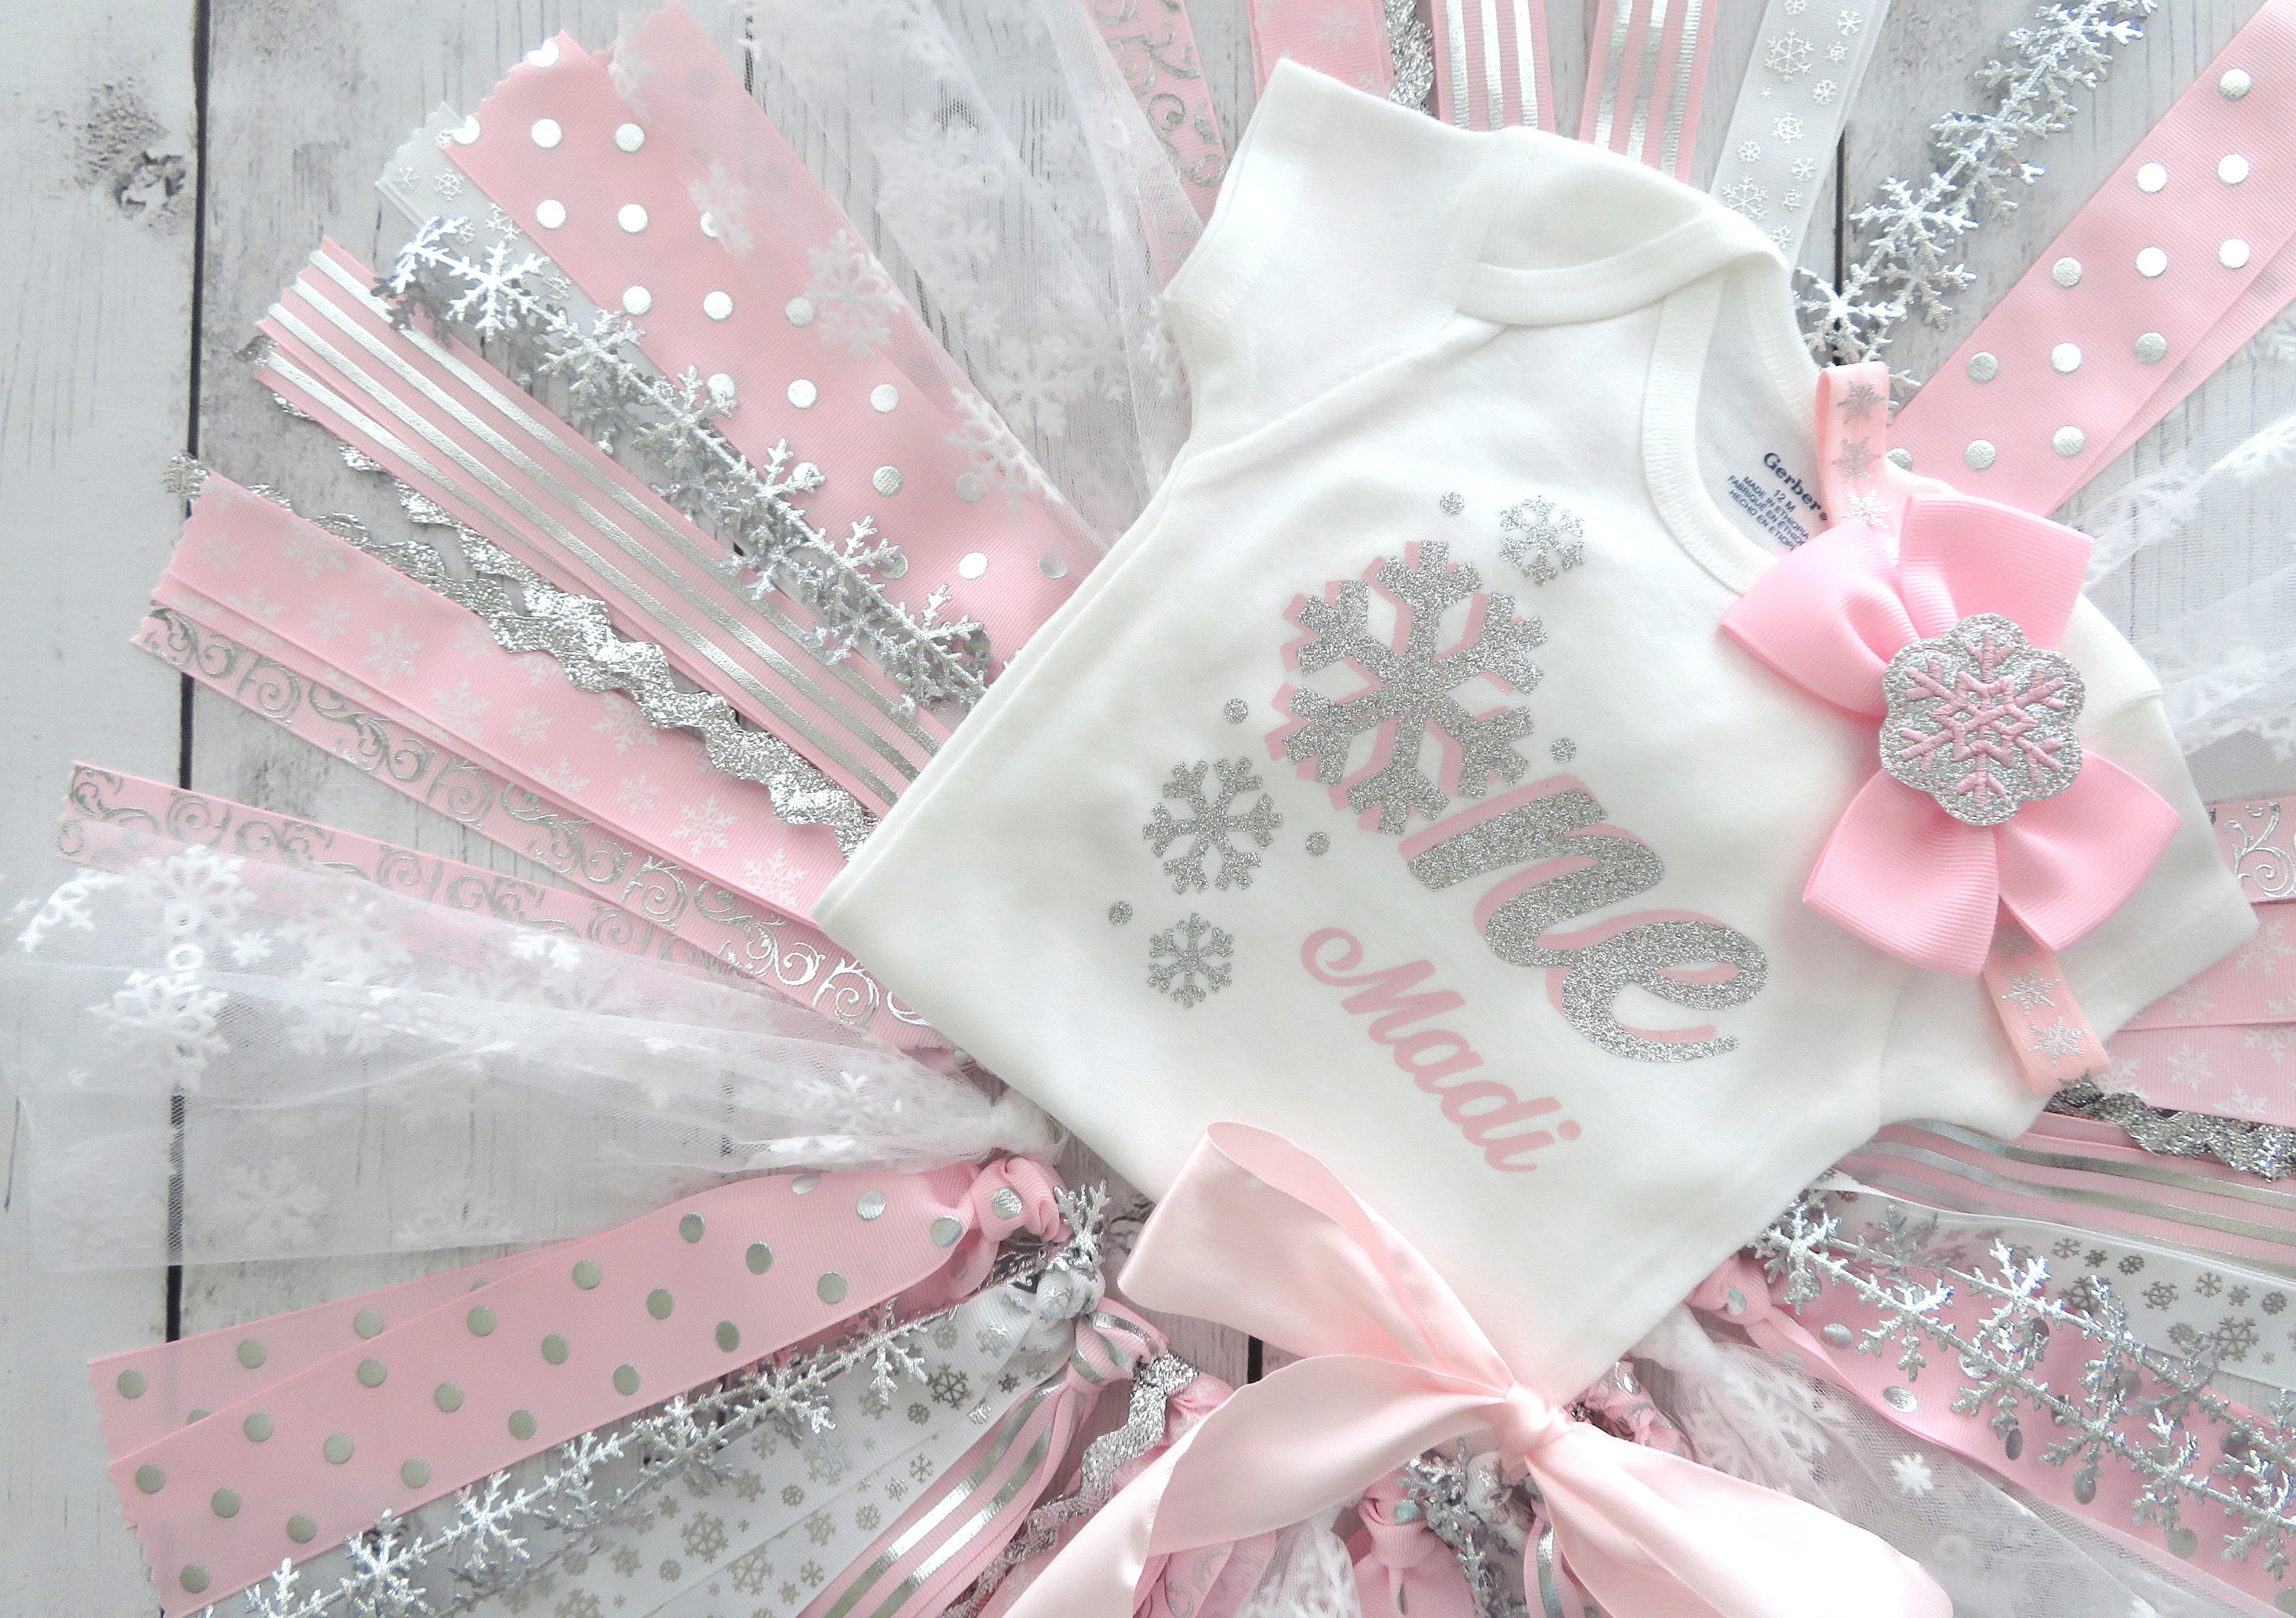 Snowflake First Birthday Outfit with Fabric Tutu in light pink and silver - winter ONEderland birthday party, 1st bday outfit